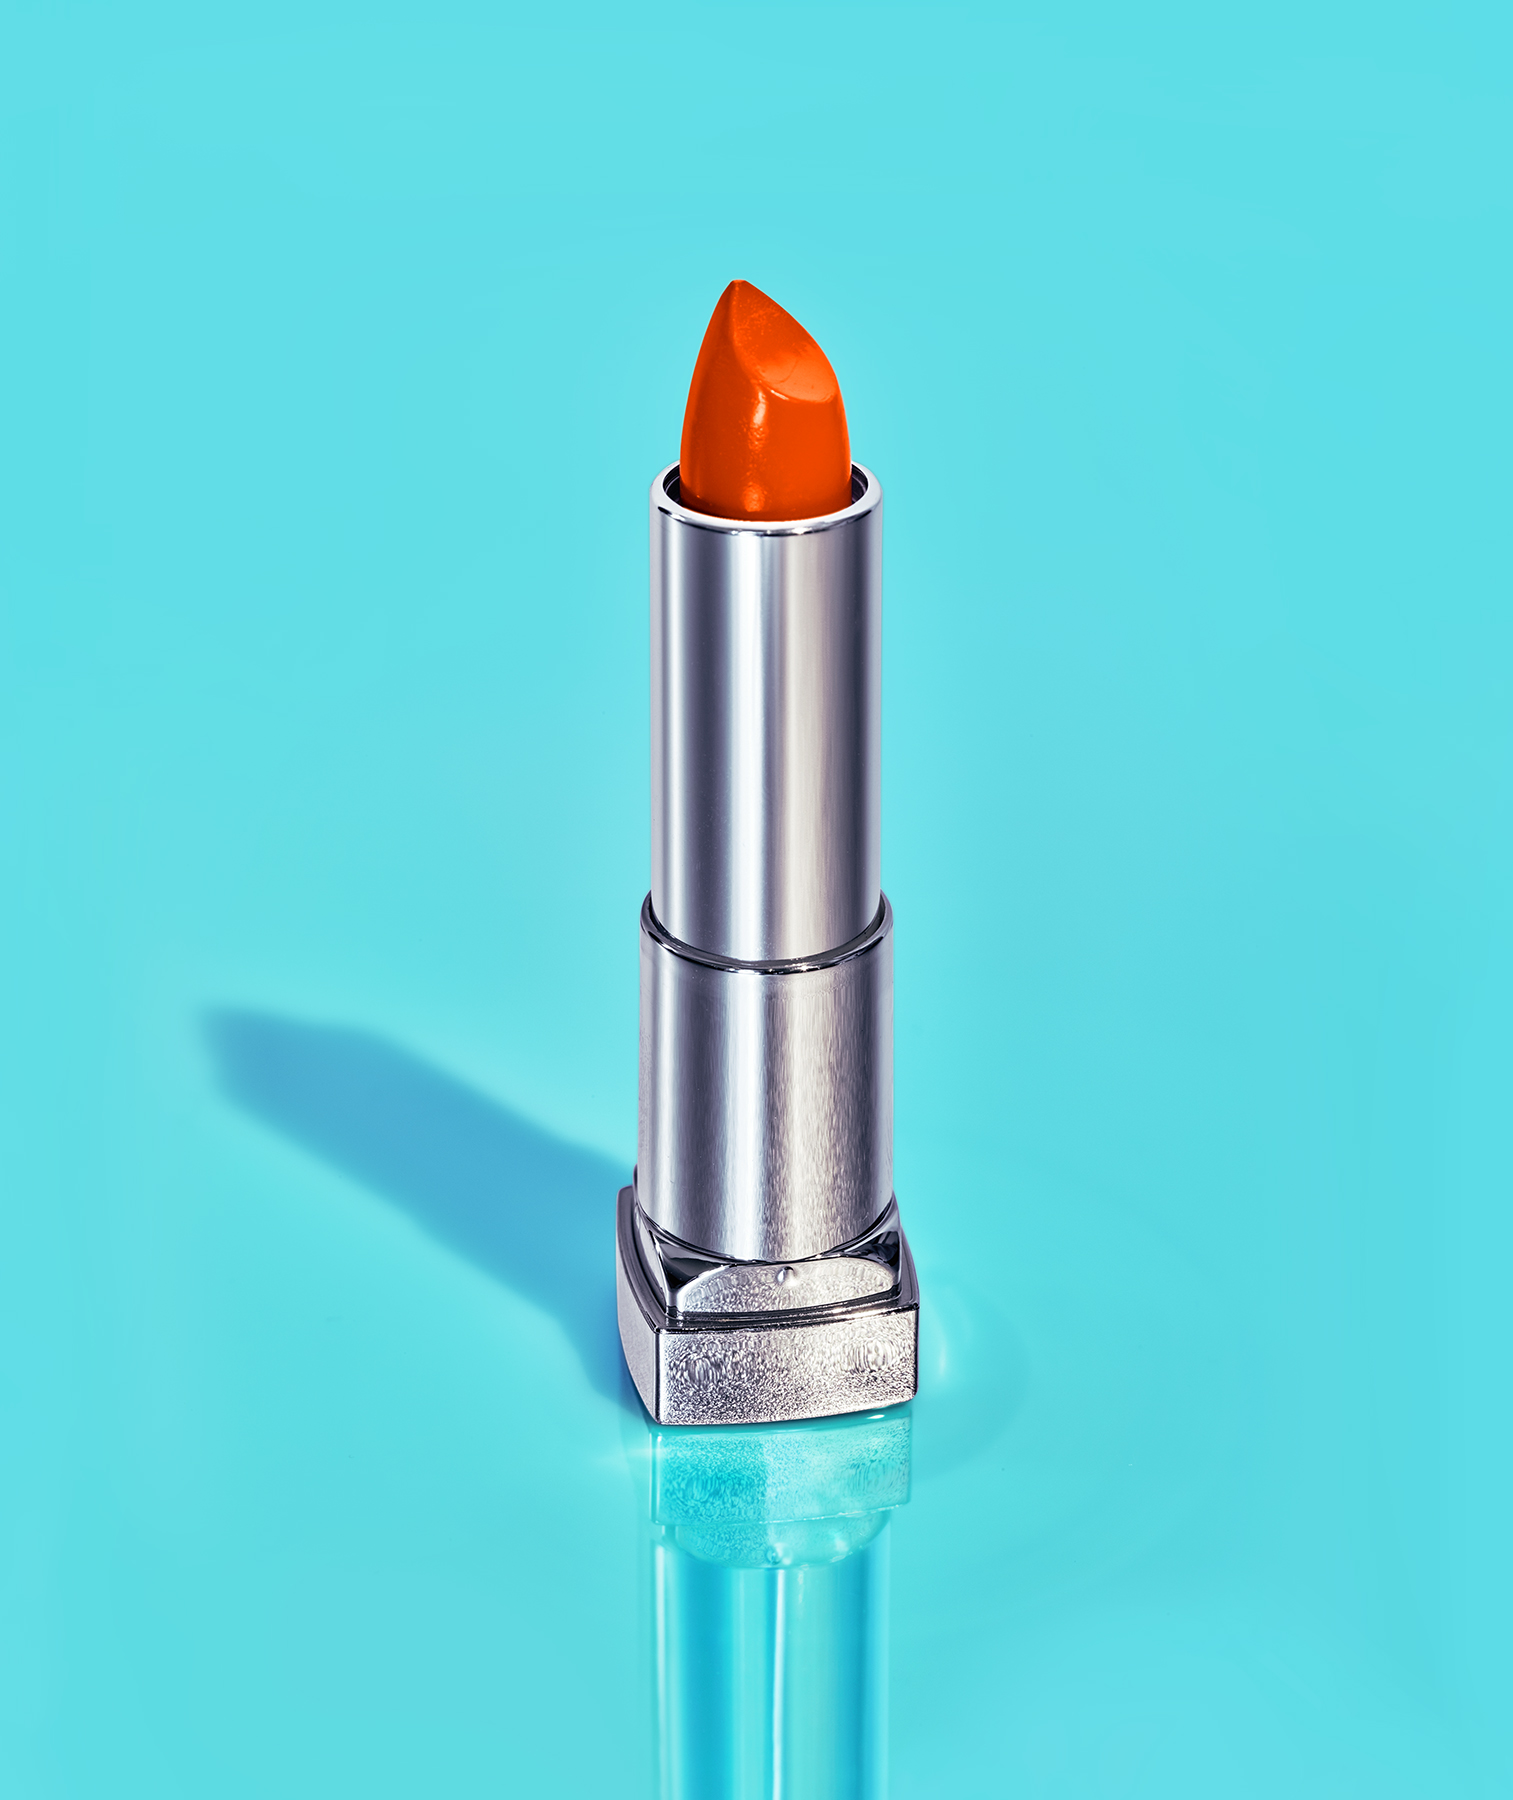 Bright coral lipstick on turquoise